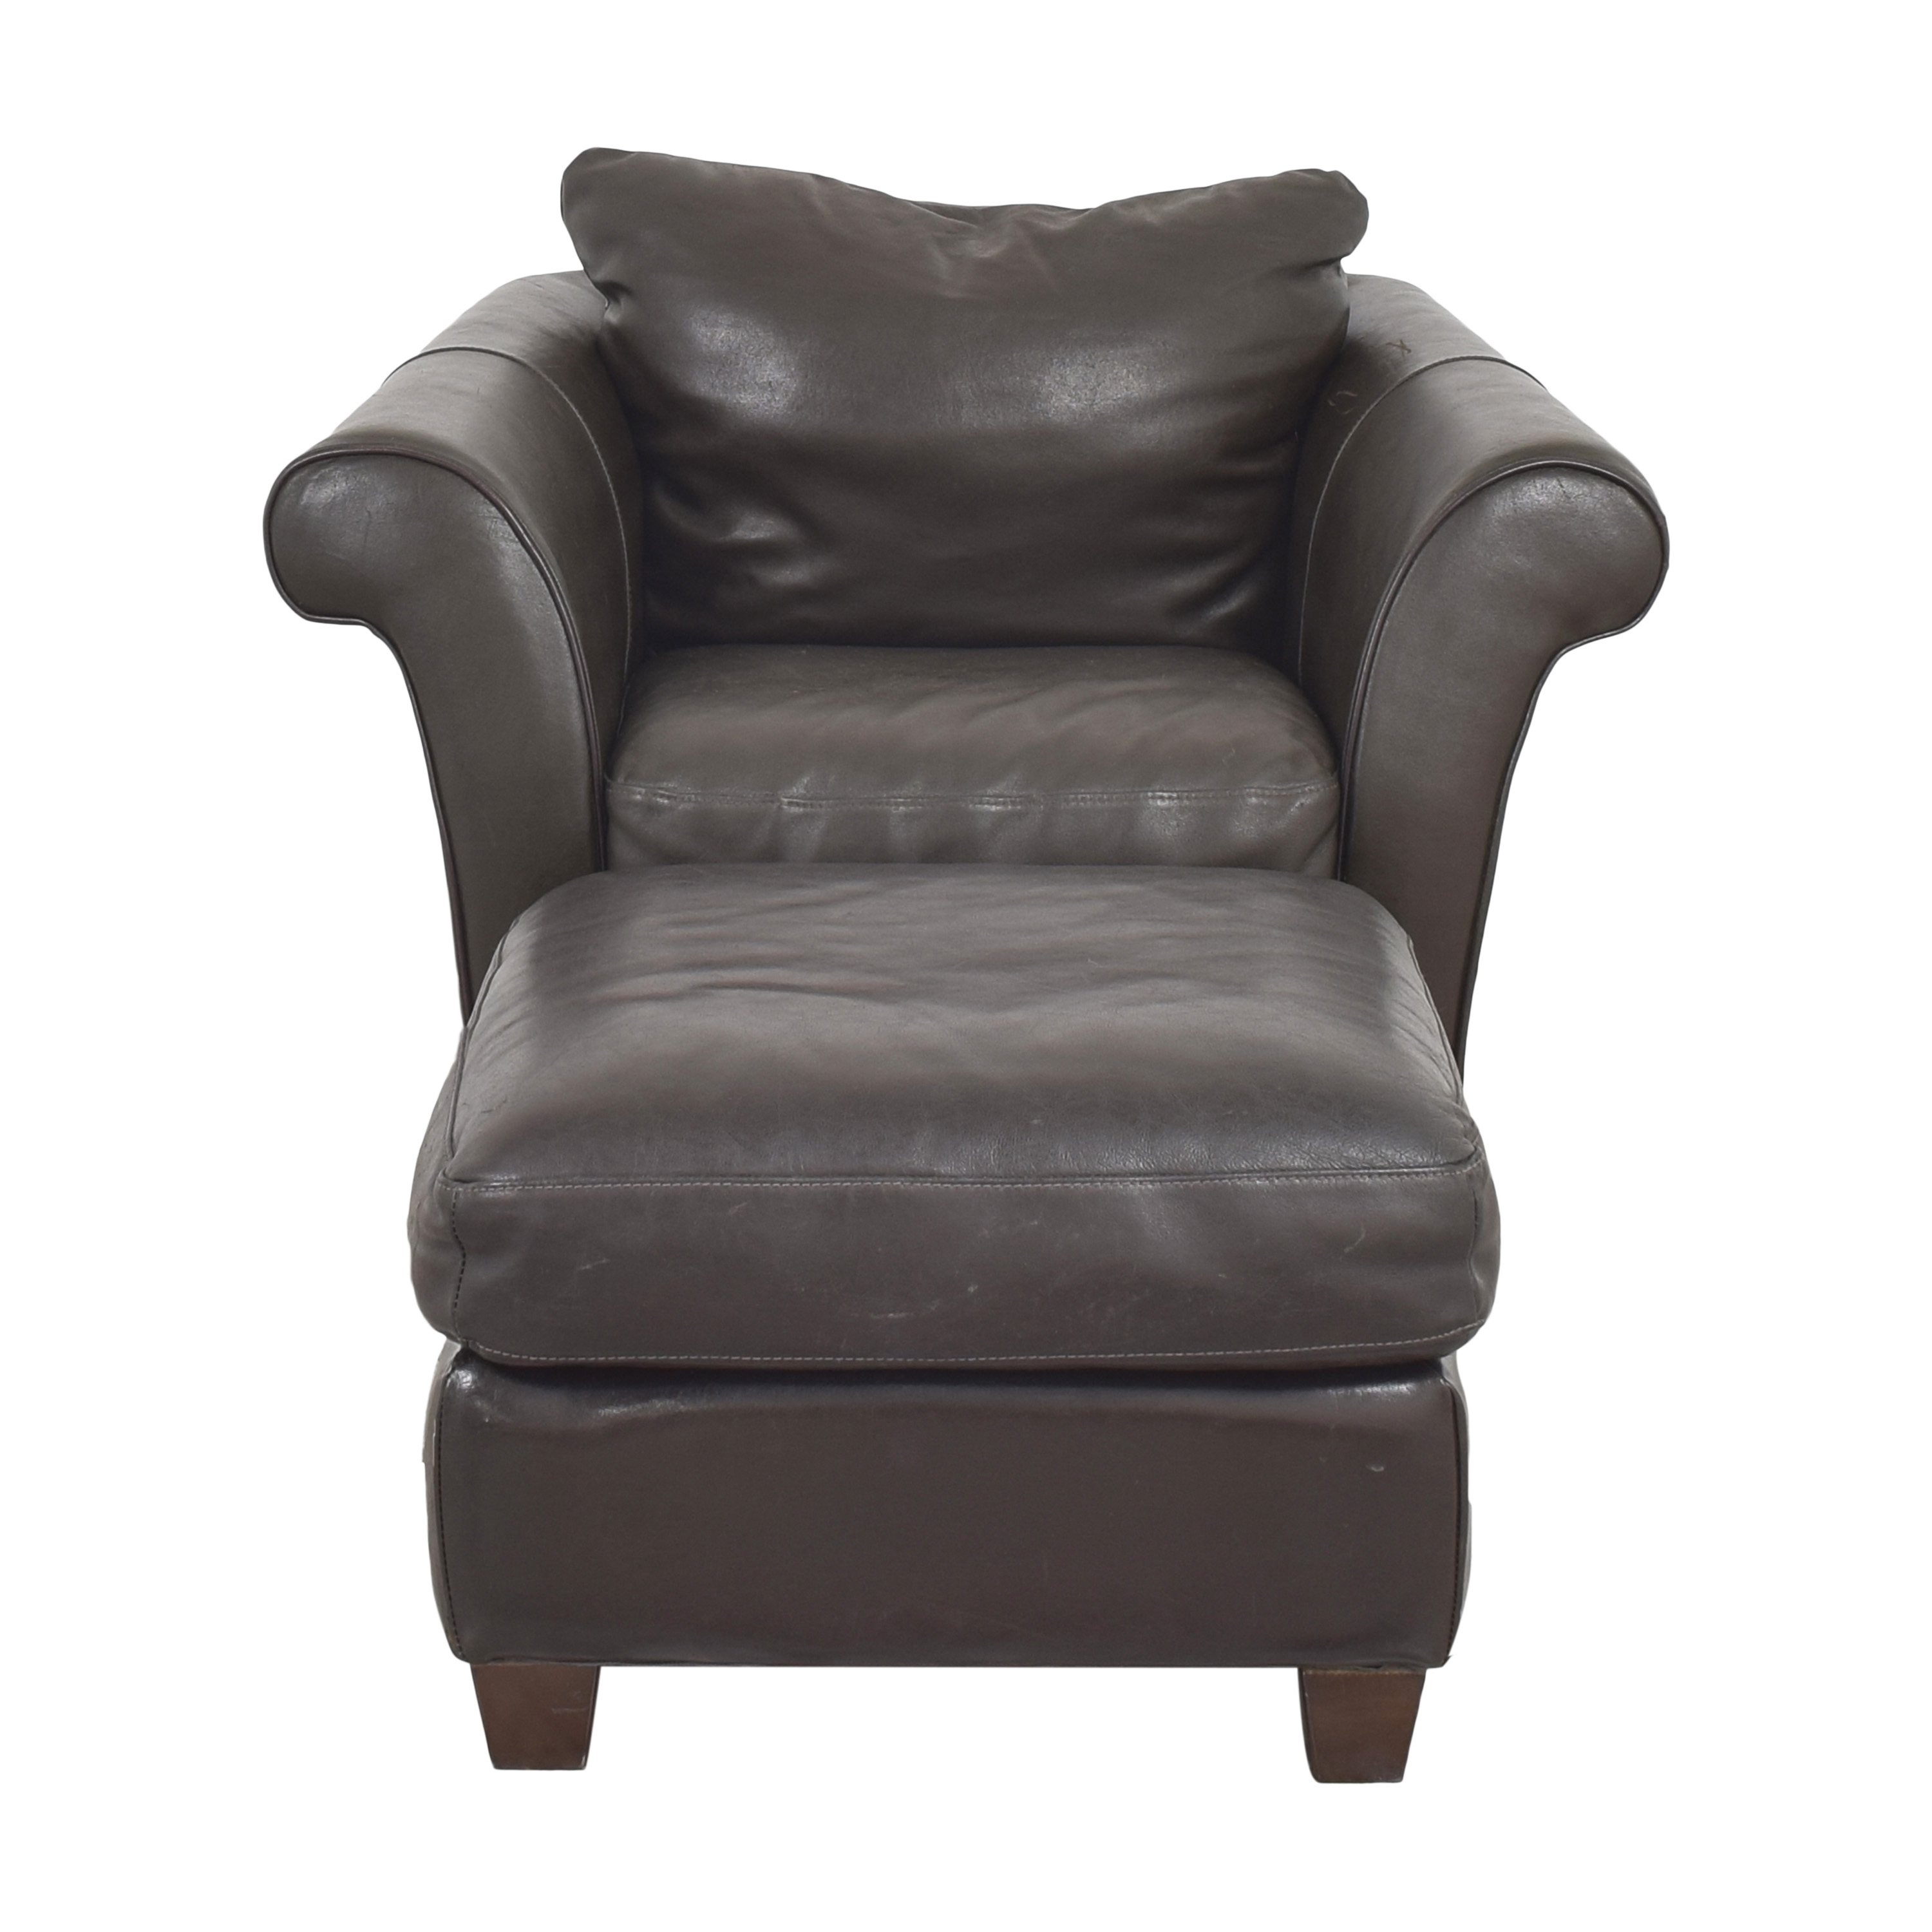 Macy's Macy's Lounge Chair with Ottoman dimensions